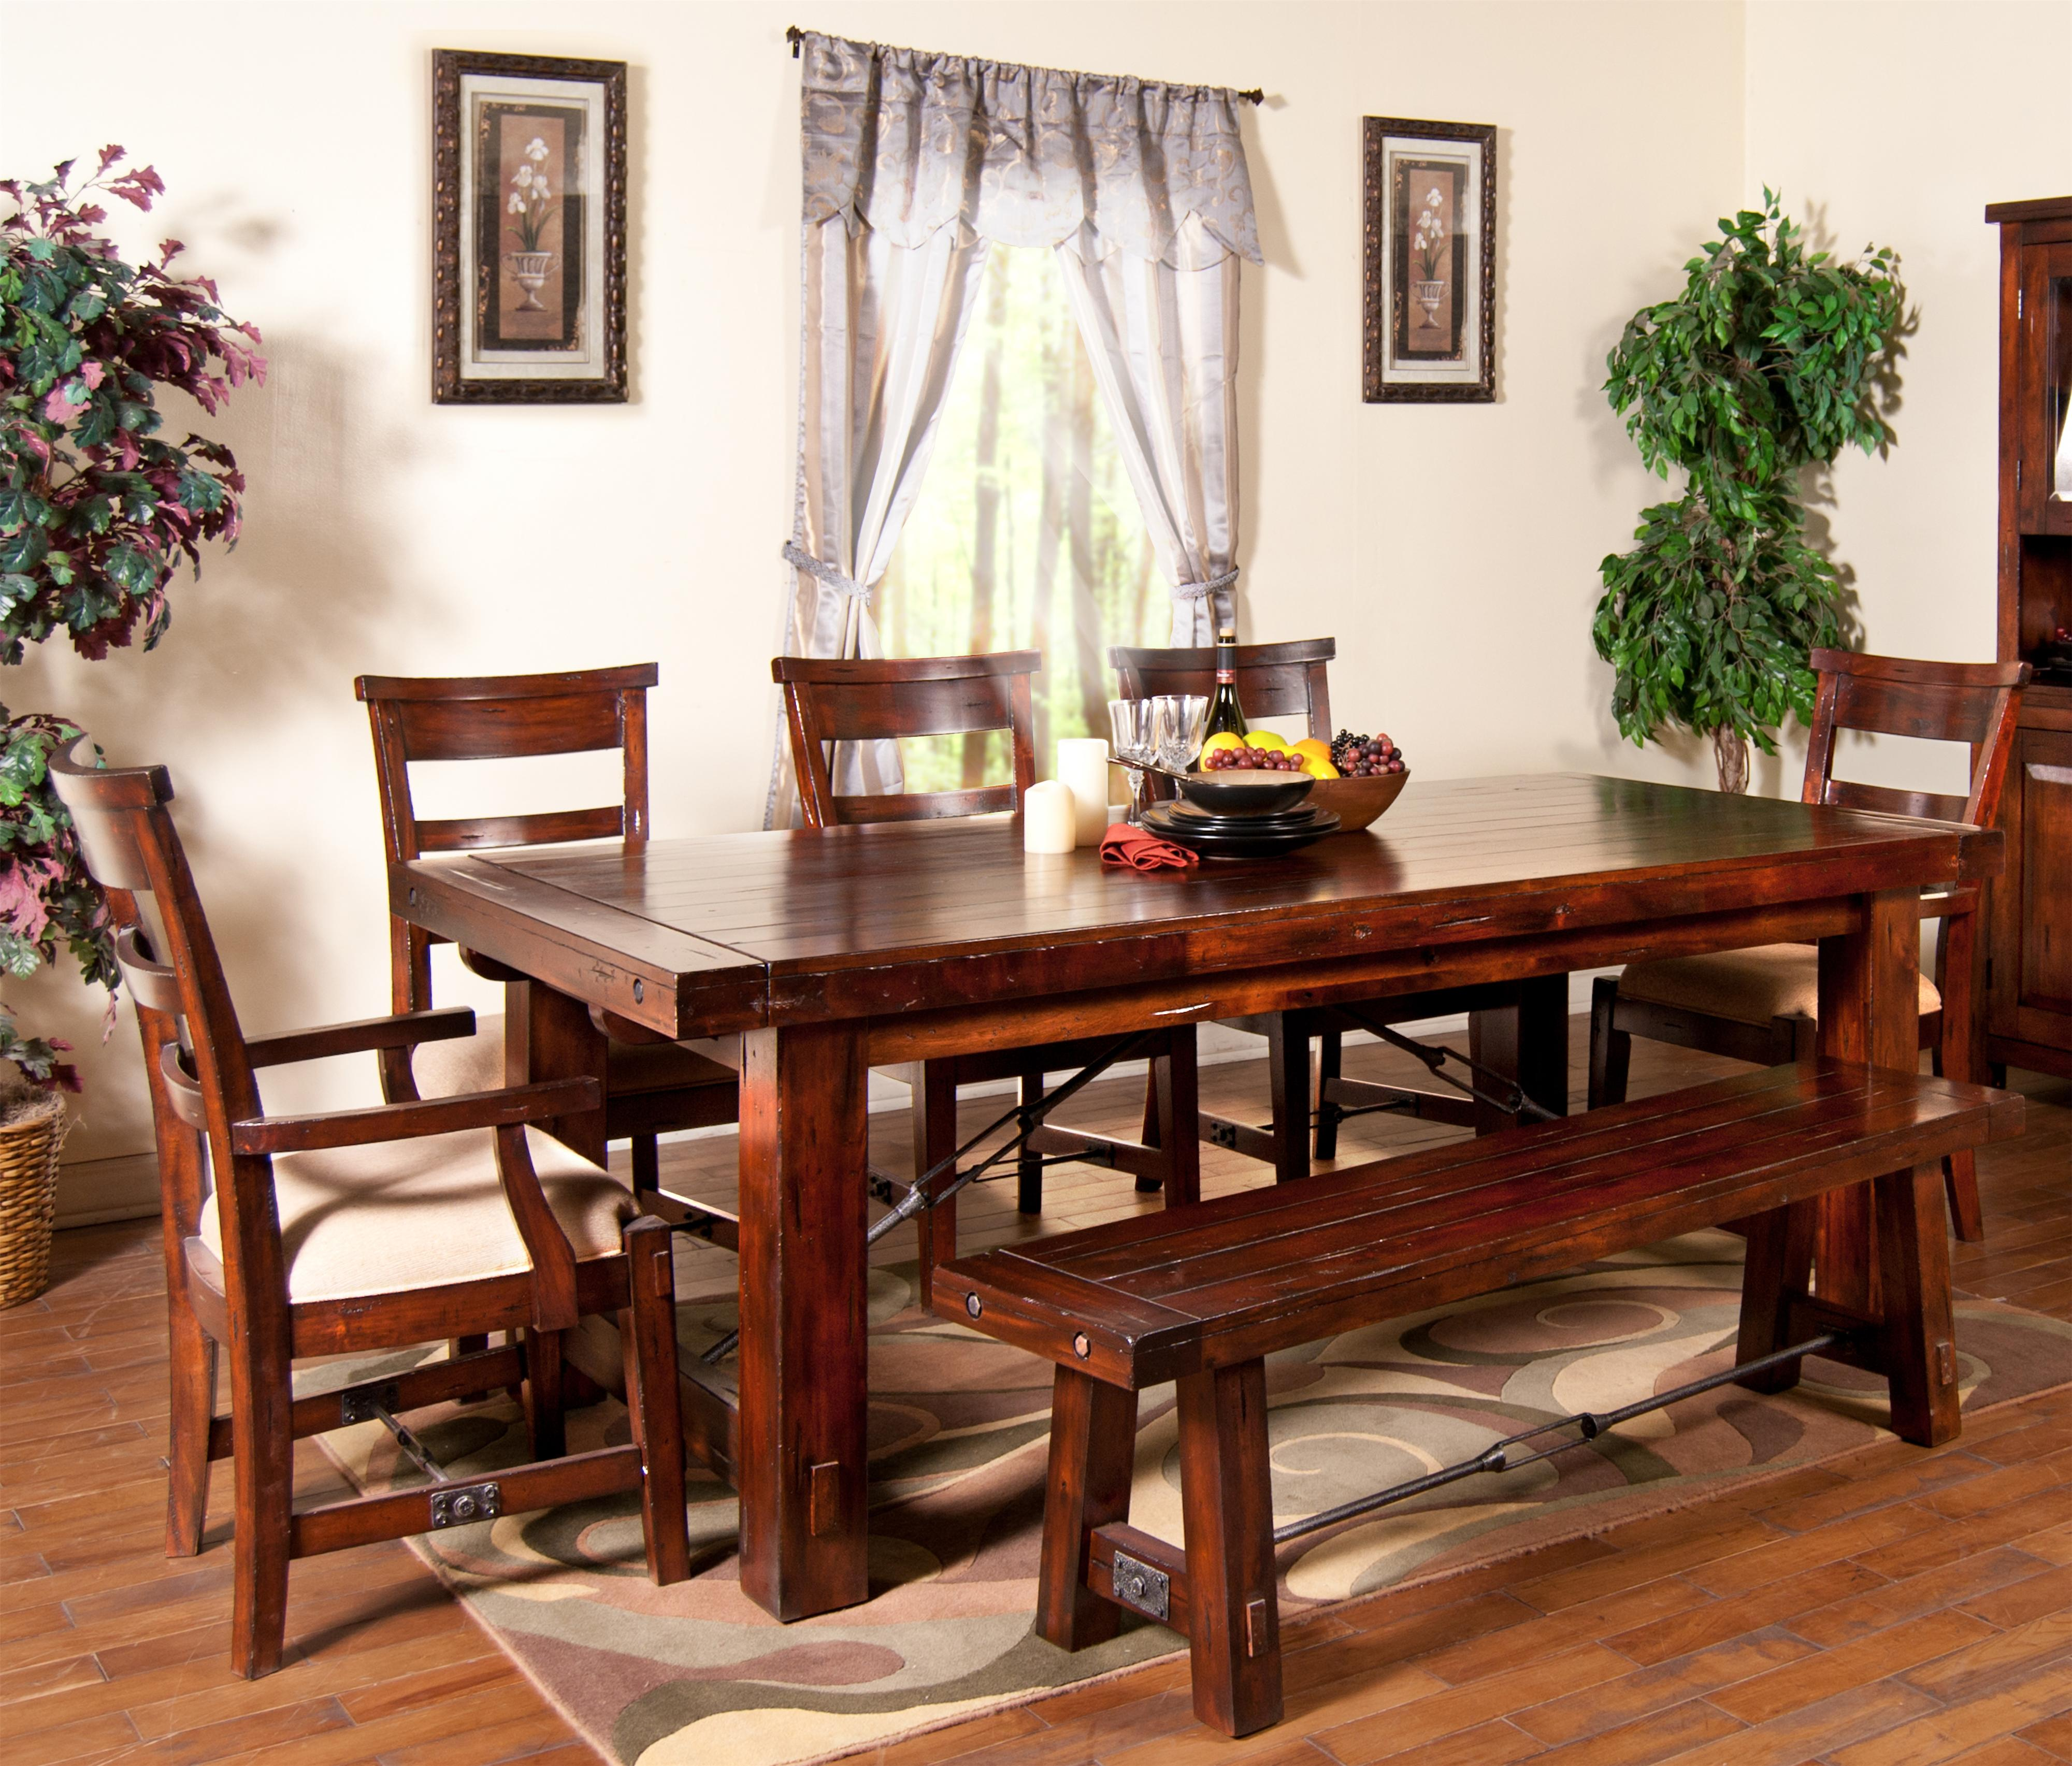 Kitchen Table And Benches: Sunny Designs Vineyard Rectangular Extension Leg Table